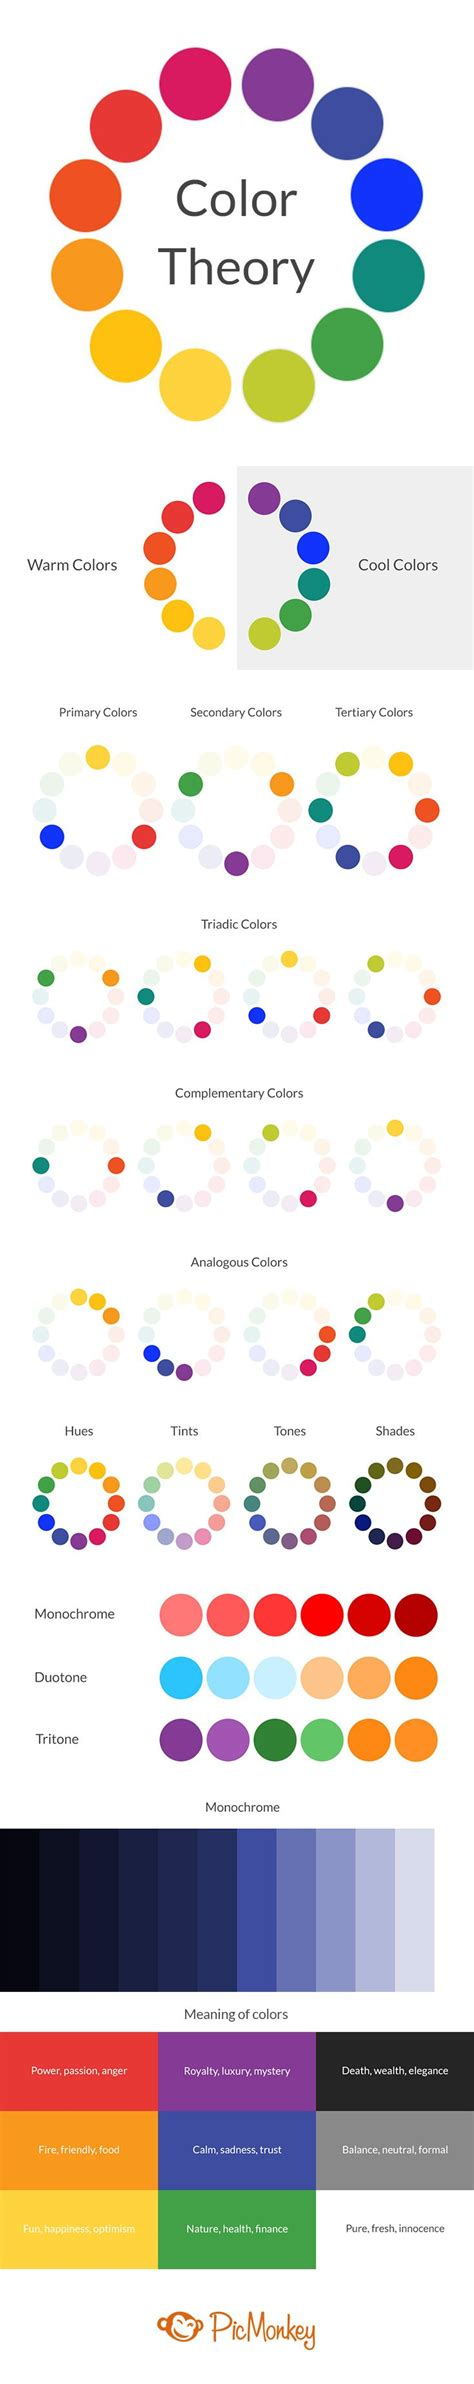 color theory choosing the best colors for your designs